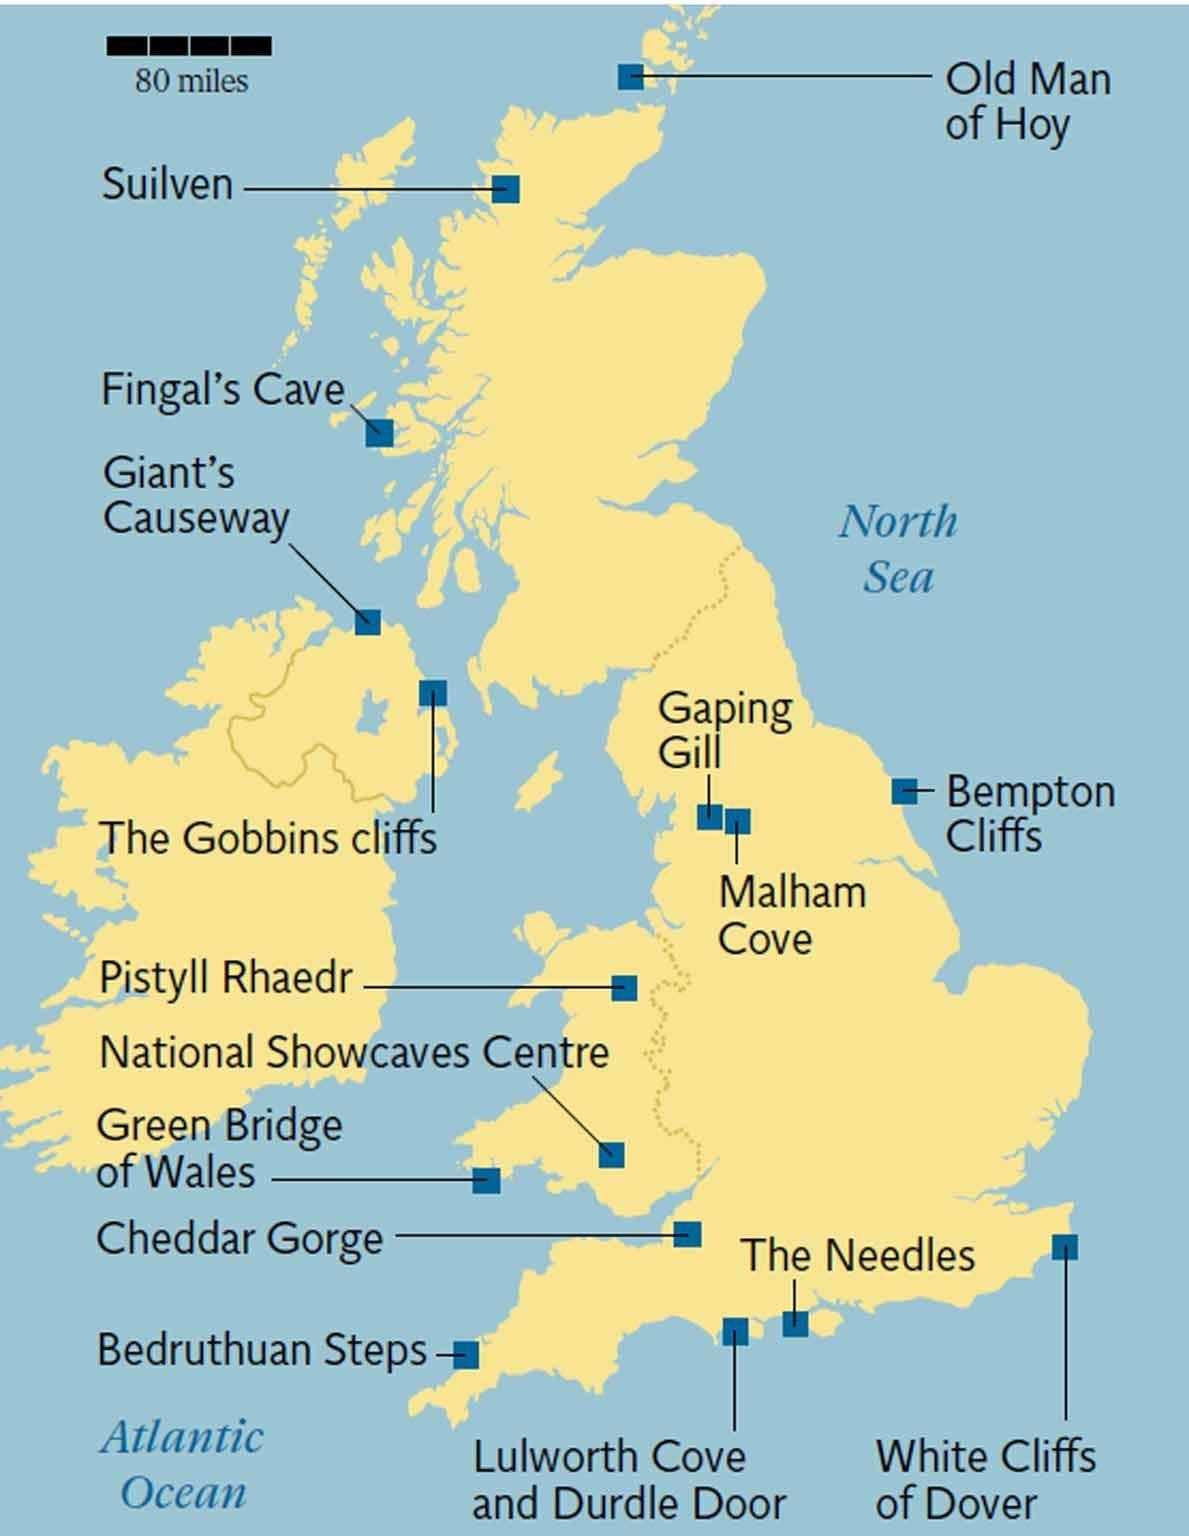 Natural wonders in the UK: From Giant's Causeway to Durdle ... on edinburgh castle map, fingal's cave map, great wall of china map, united kingdom map, english channel map, belfast map, giant causeway and rope bridge map, skellig michael map, machu picchu map, angkor wat map, you are here map, venice map, devils postpile national monument map, australia map, causeway coastal route map, carrick-a-rede rope bridge map, hadrian's wall map, leaning tower of pisa map, rock of gibraltar map, gros morne national park map,